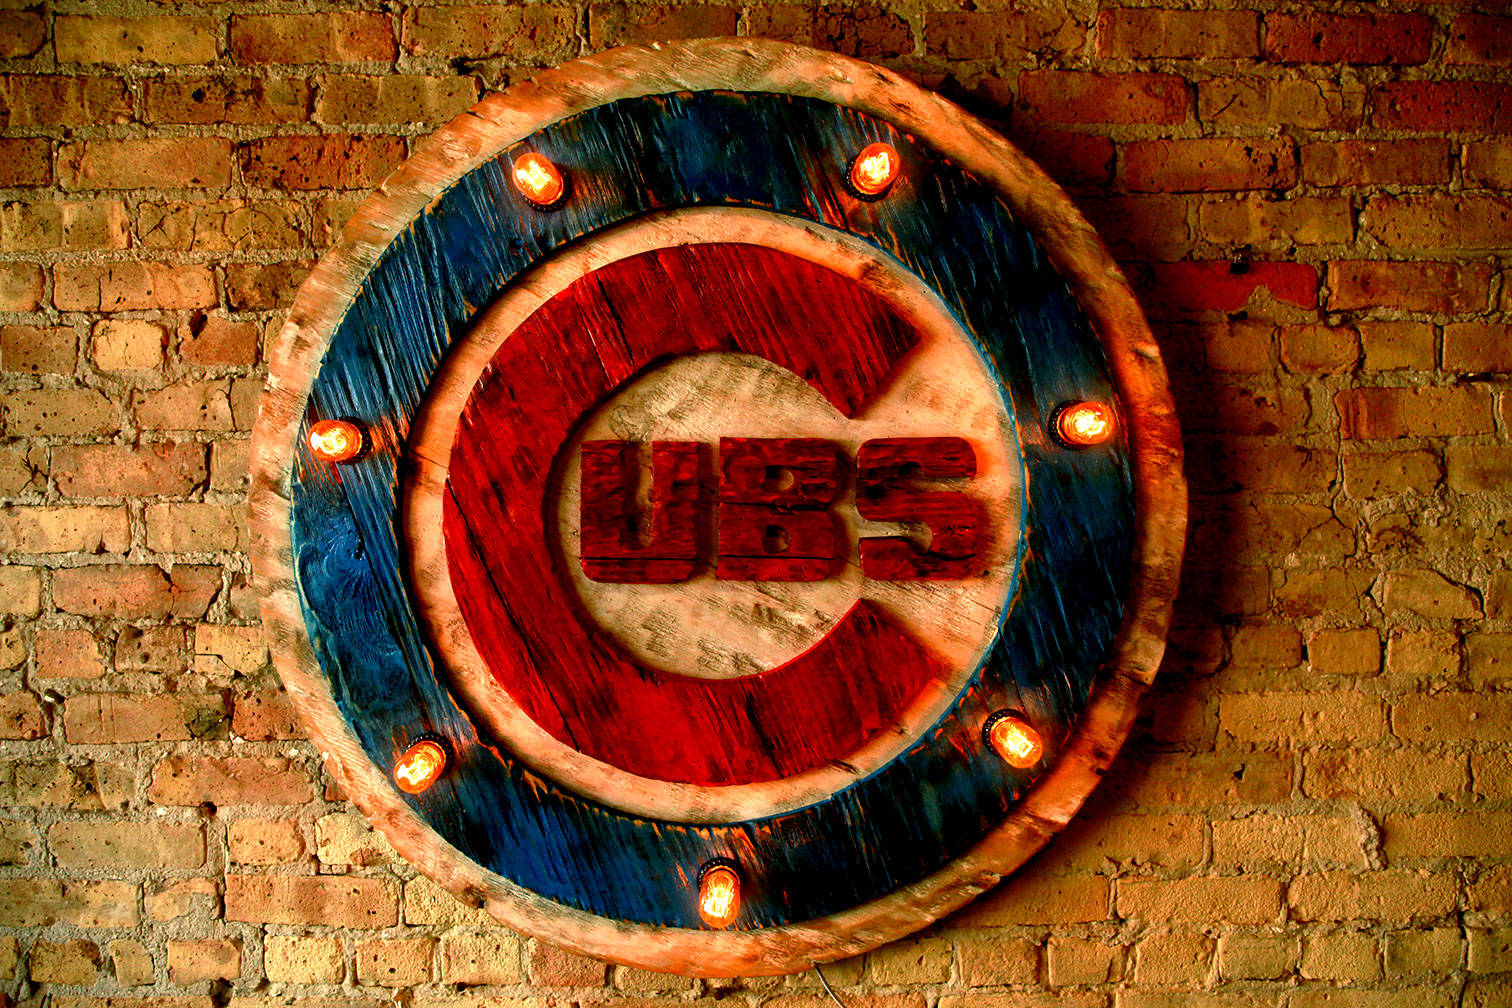 Chicago Cubs Handmade Distressed Edison Light Bulb Wood Sign Vintage Art Weathered Recycled Baseball Home Decor Wall Art Man Cave Blue Red